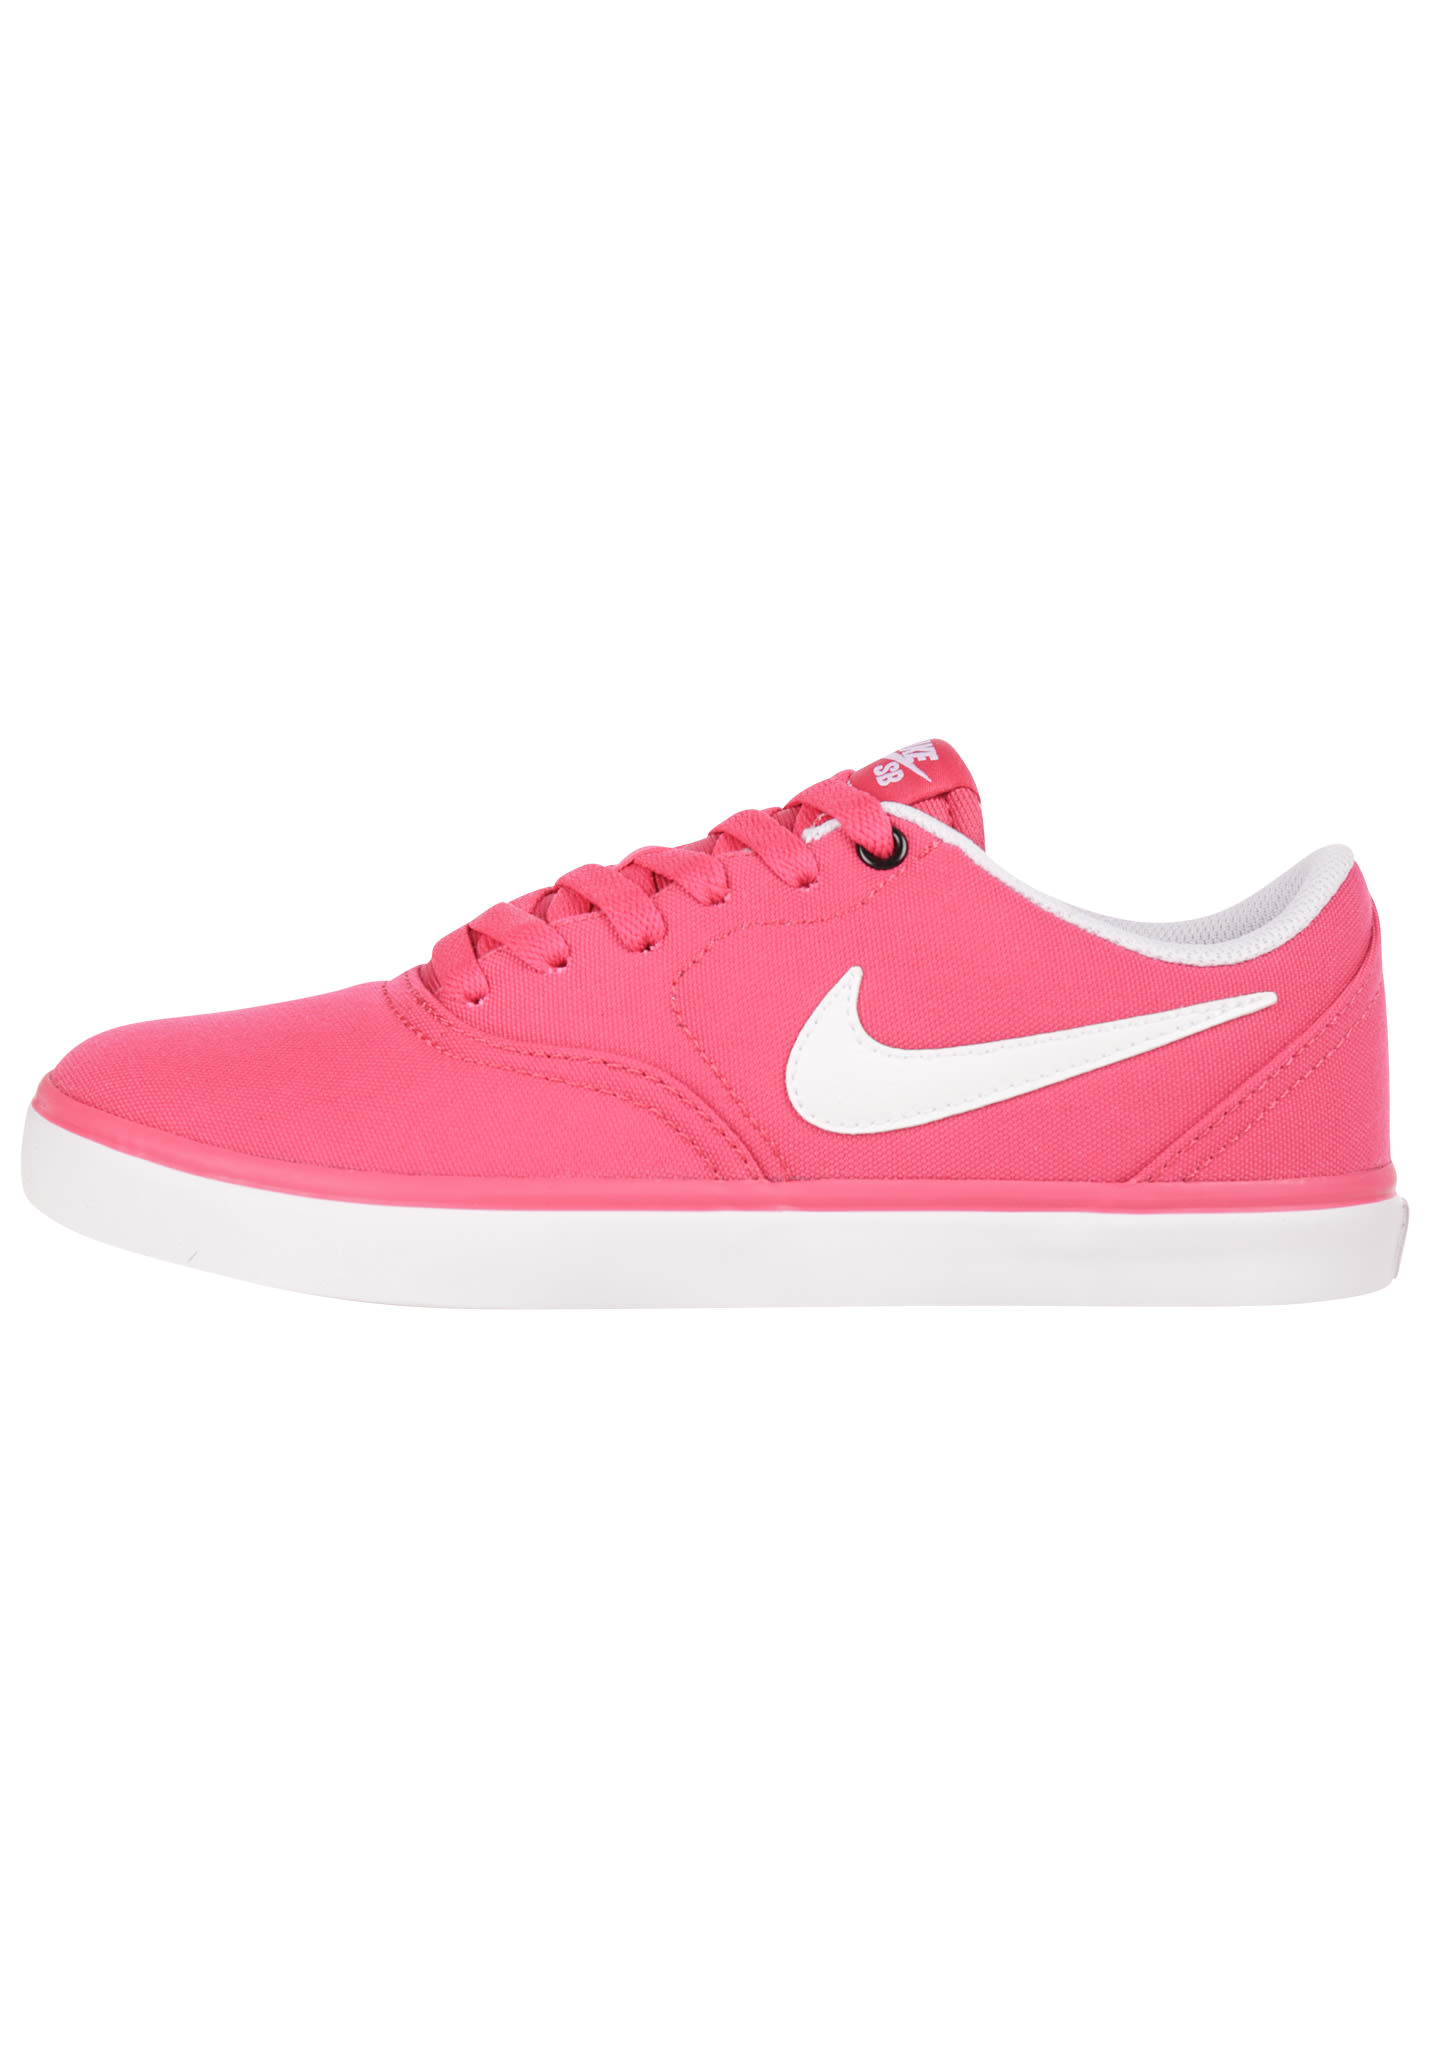 the latest 126d1 e724e NIKE SB Check Solar - Sneakers for Women - Pink - Planet Sports